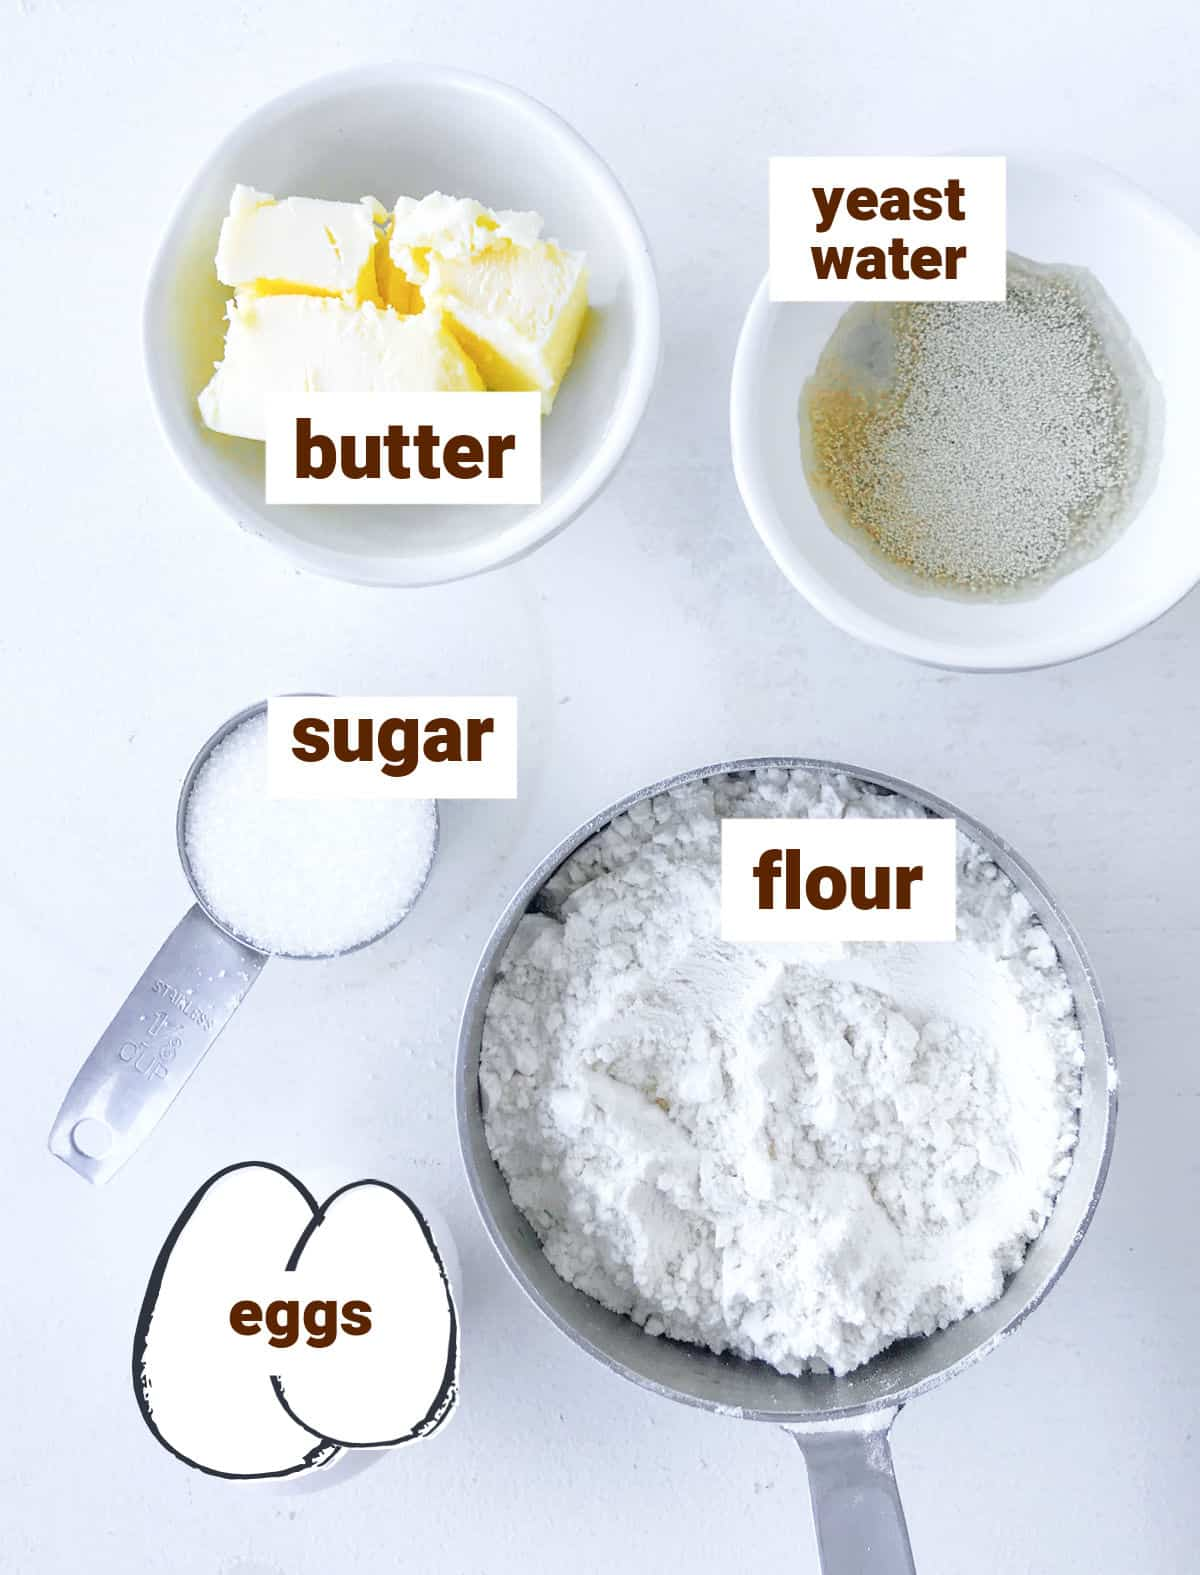 Ingredients in bowls on white surface for pandoro bread, including egg drawing, butter and yeast